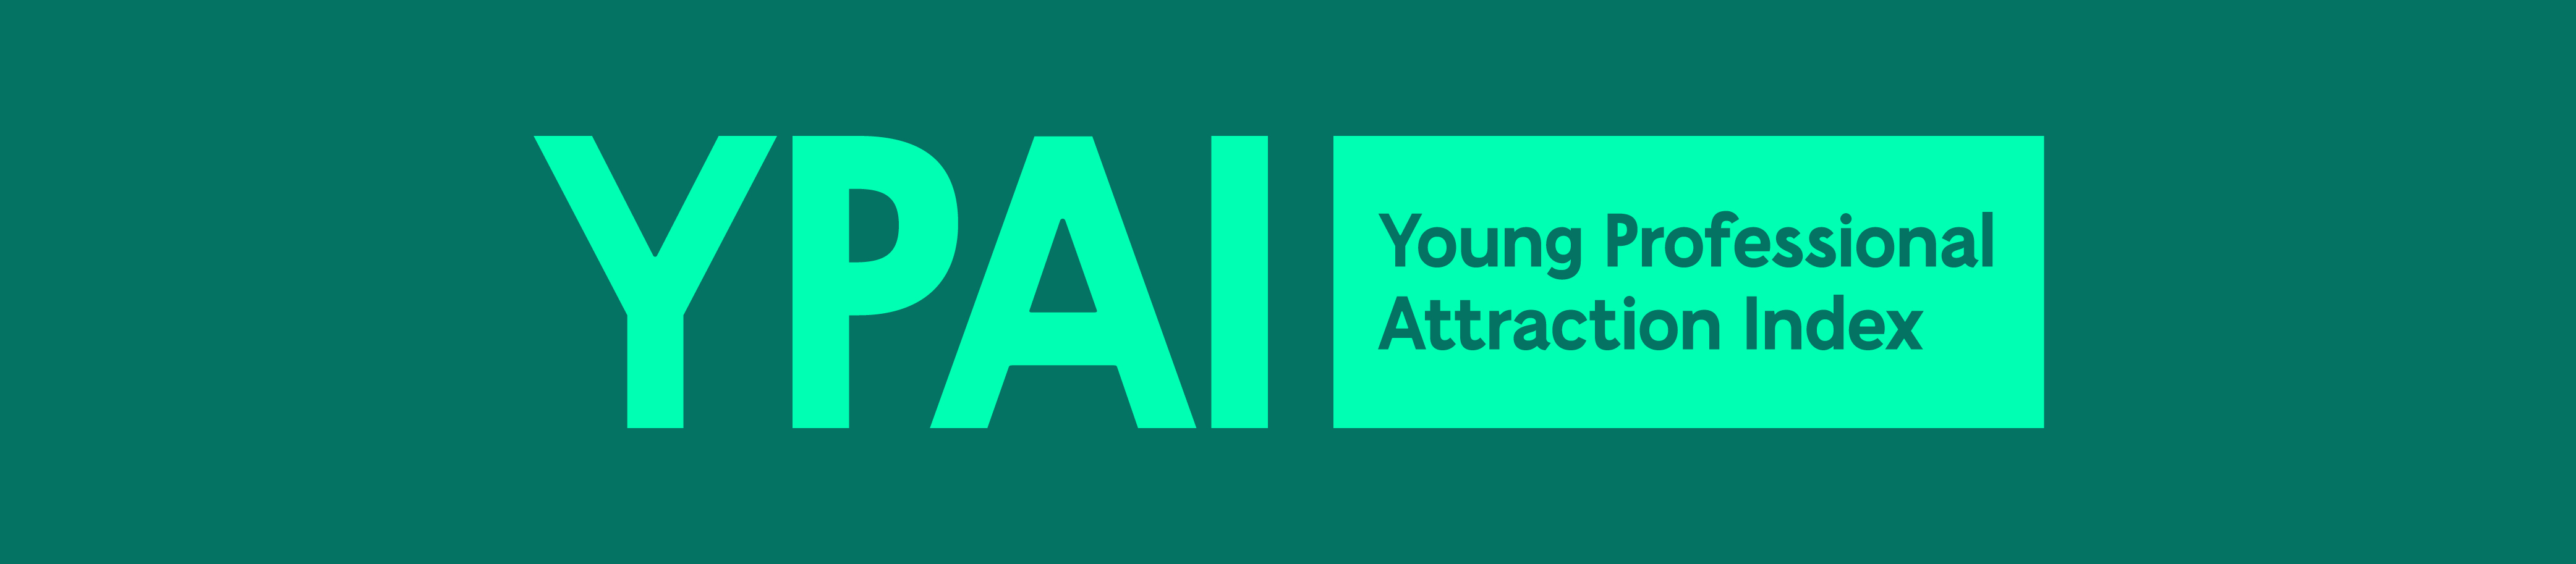 Her er Norges mest attraktive arbeidsplasser – Young Professional Attraction Index 2019